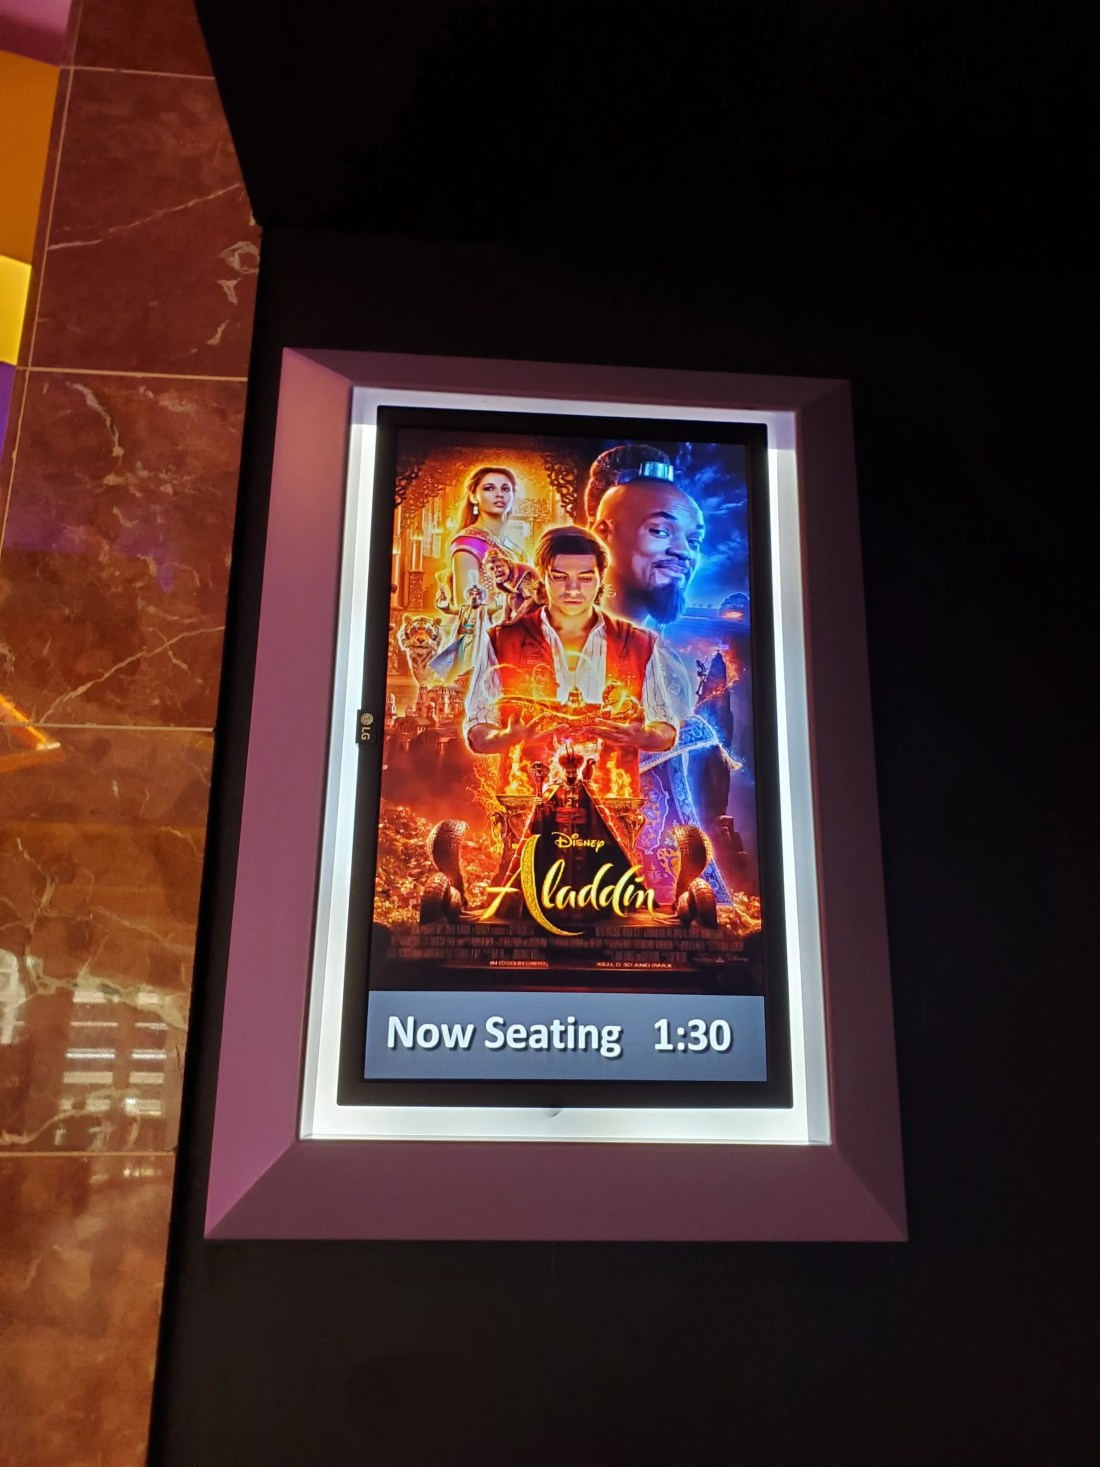 Aladdin Regal Cinema 4DX Showtime Poster. Read my full Disneys Live Action Remake of Aladdin Review on my blog. Disney's Aladdin 4DX Experience at Regal Cinemas - A Whole New World For The Younger Generation | Fangirl Review - Spoiler Alert!